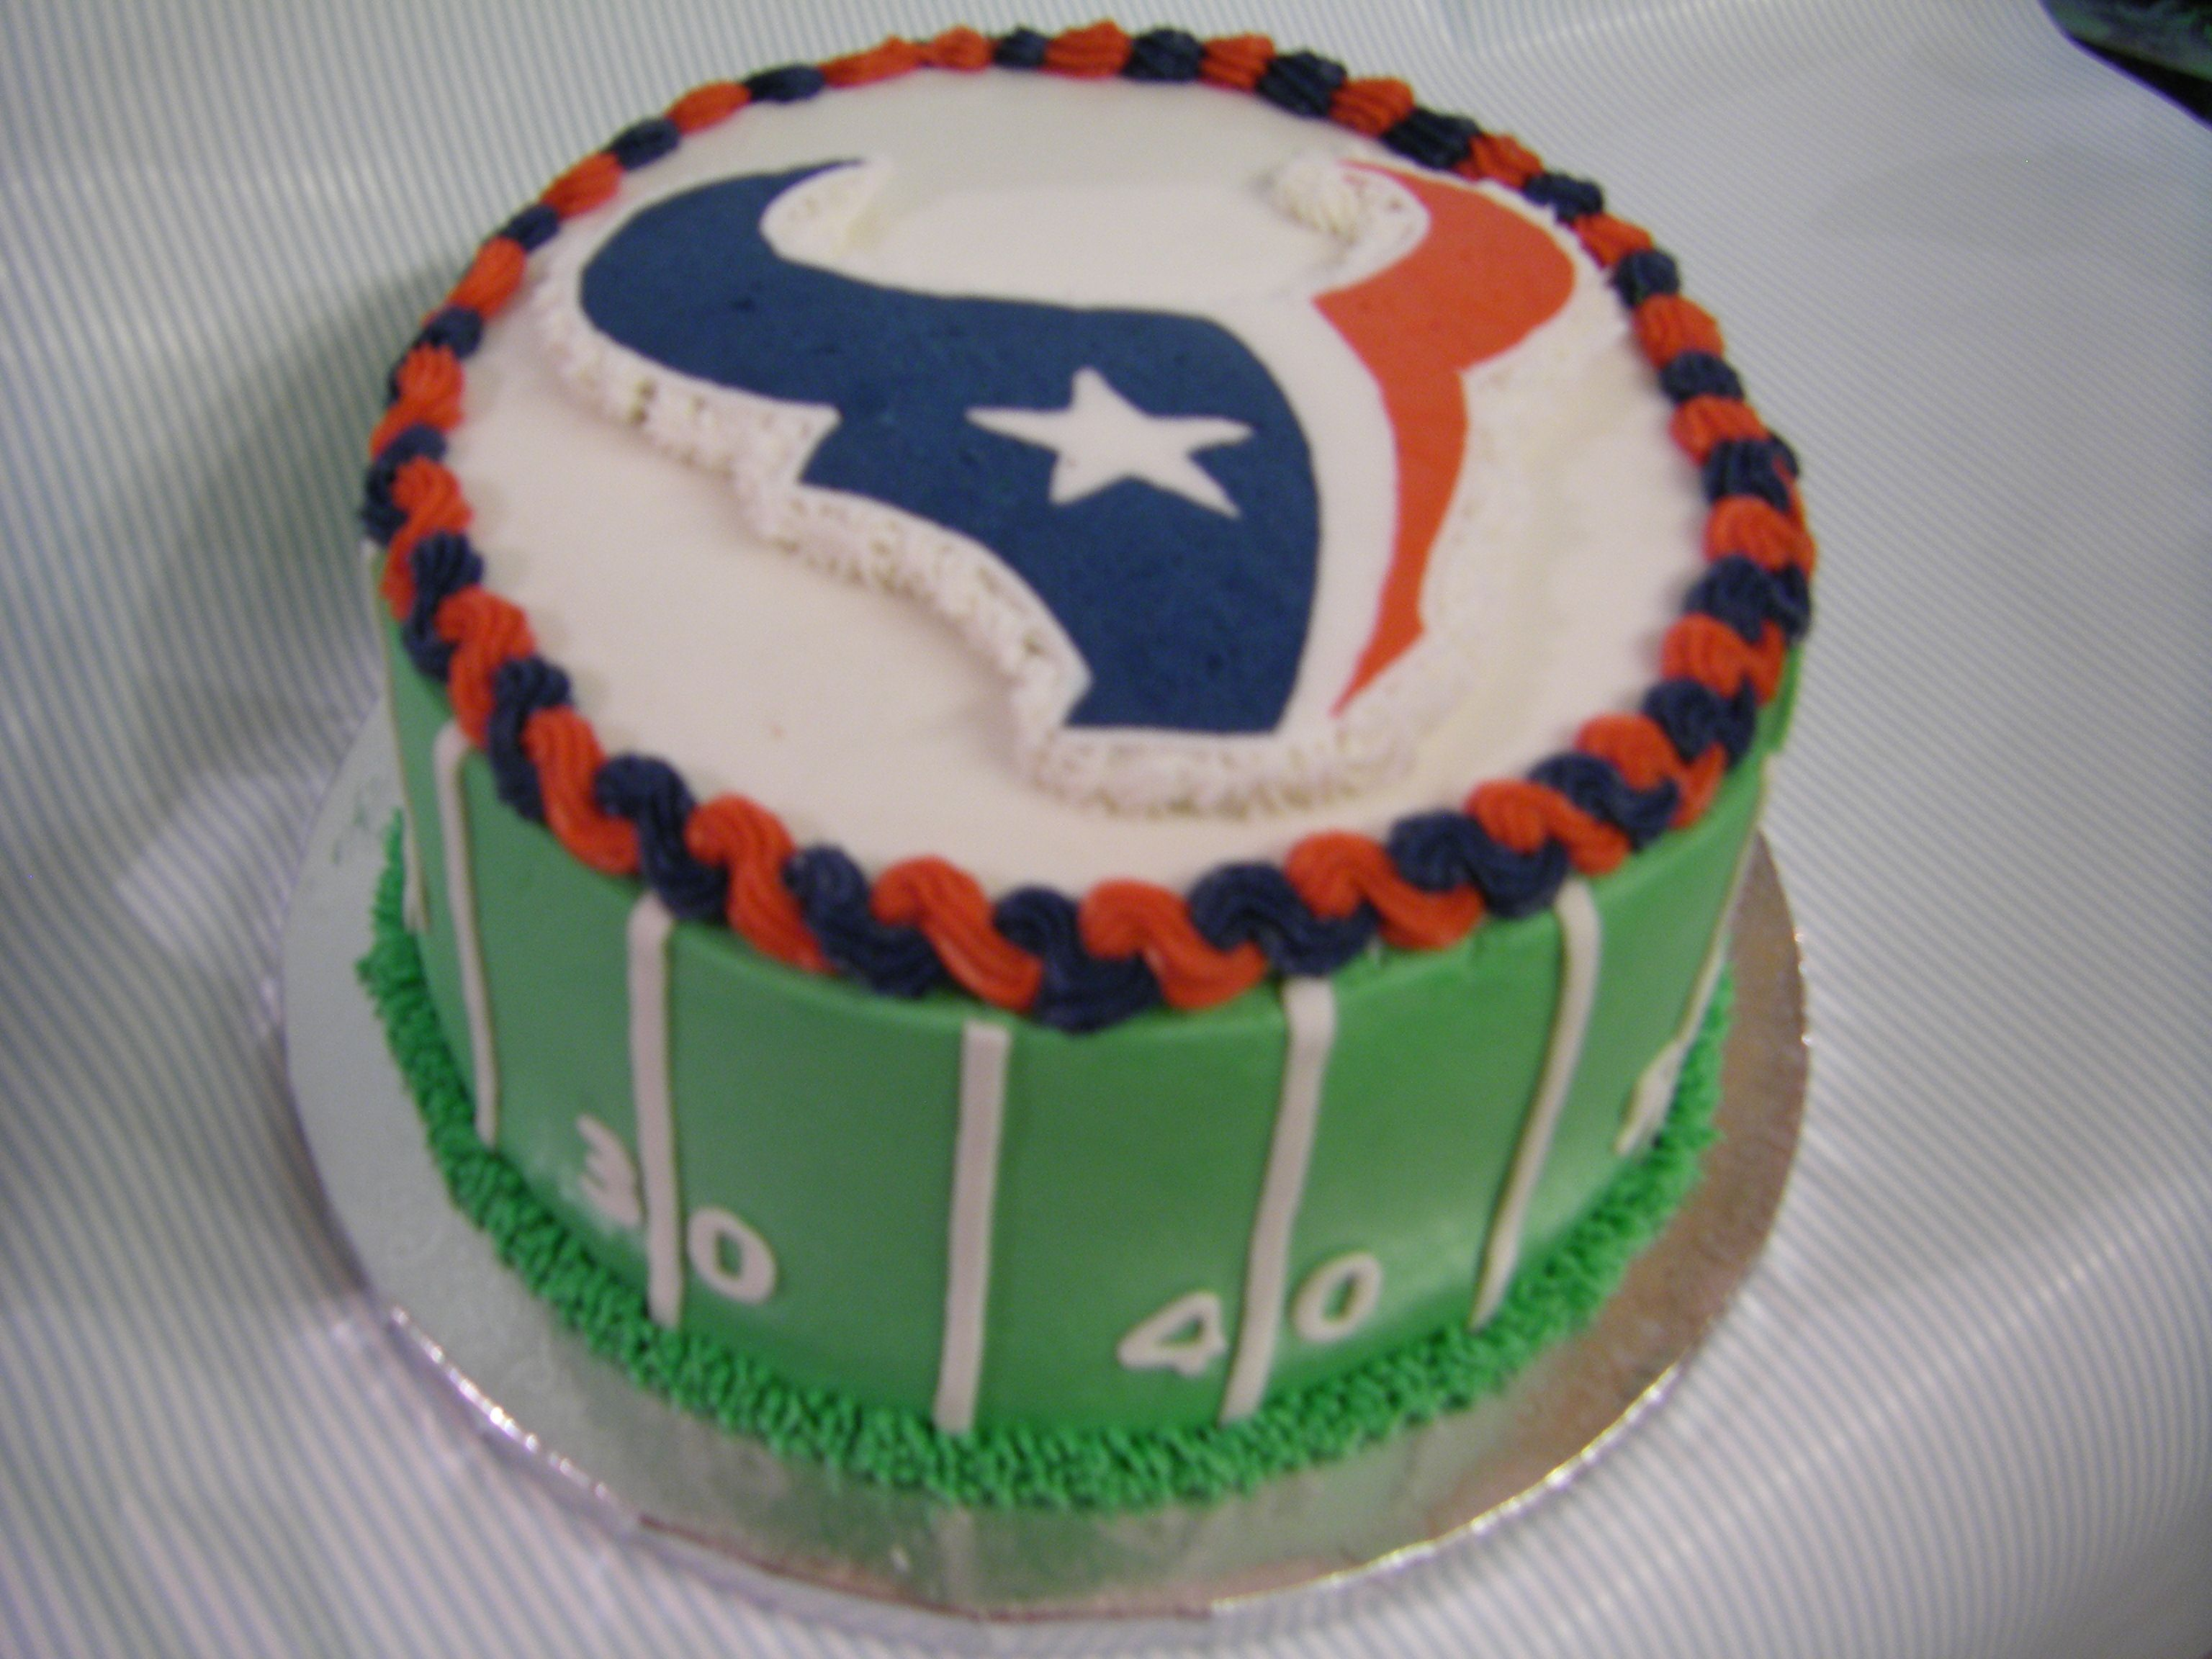 Go Houston Texans Texans Cake Houston Texans Cake Football